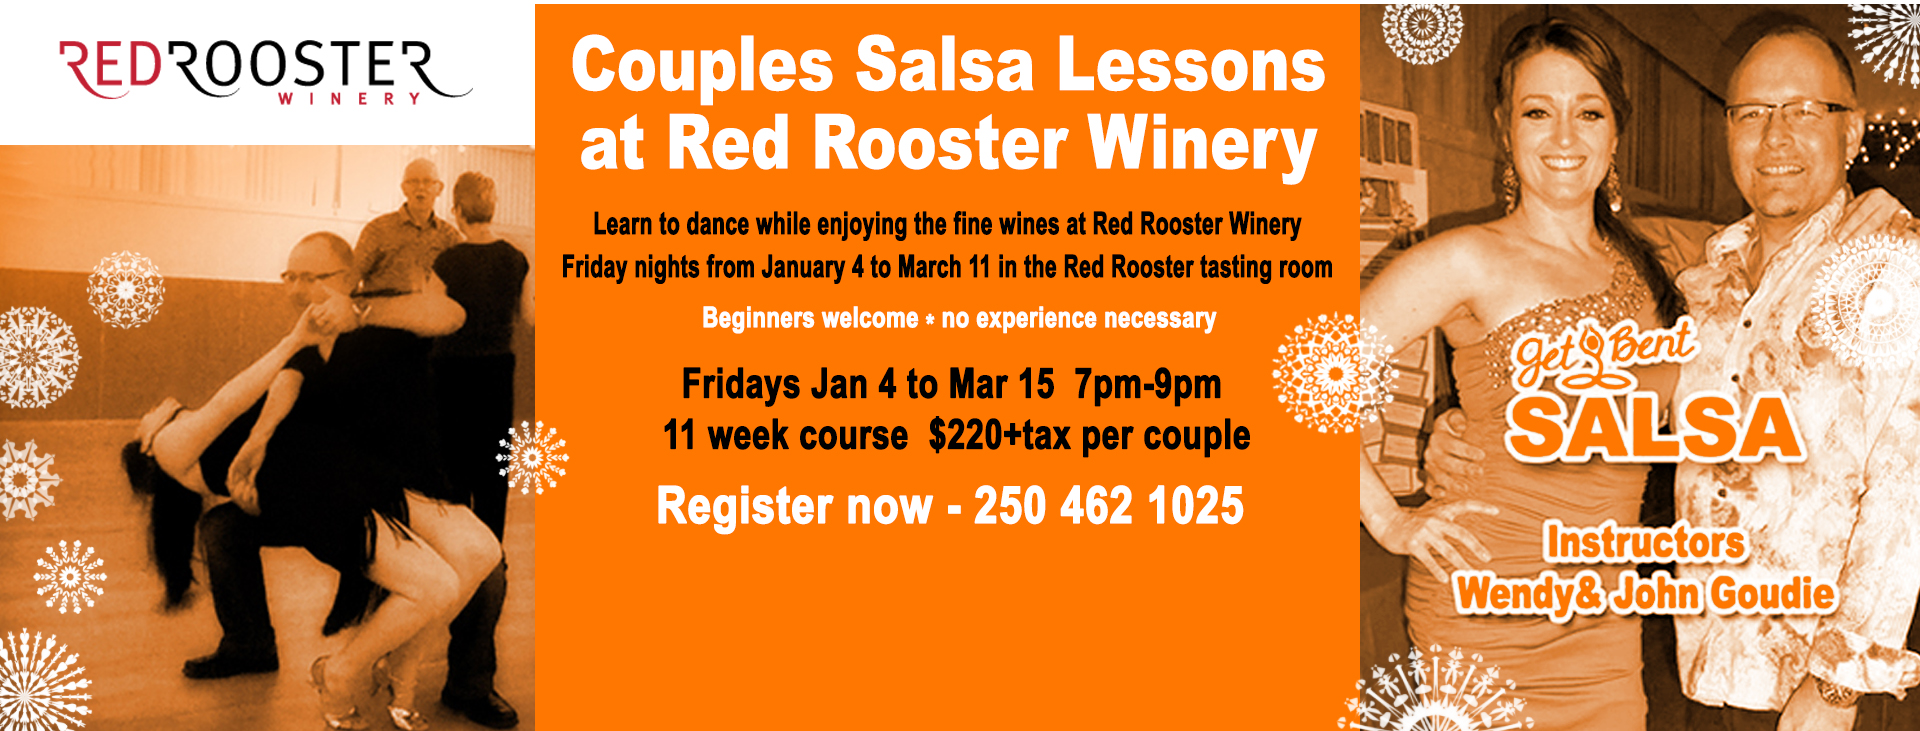 Get Bent Salsa Classes Lessons Penticton at Red Rooster Winery